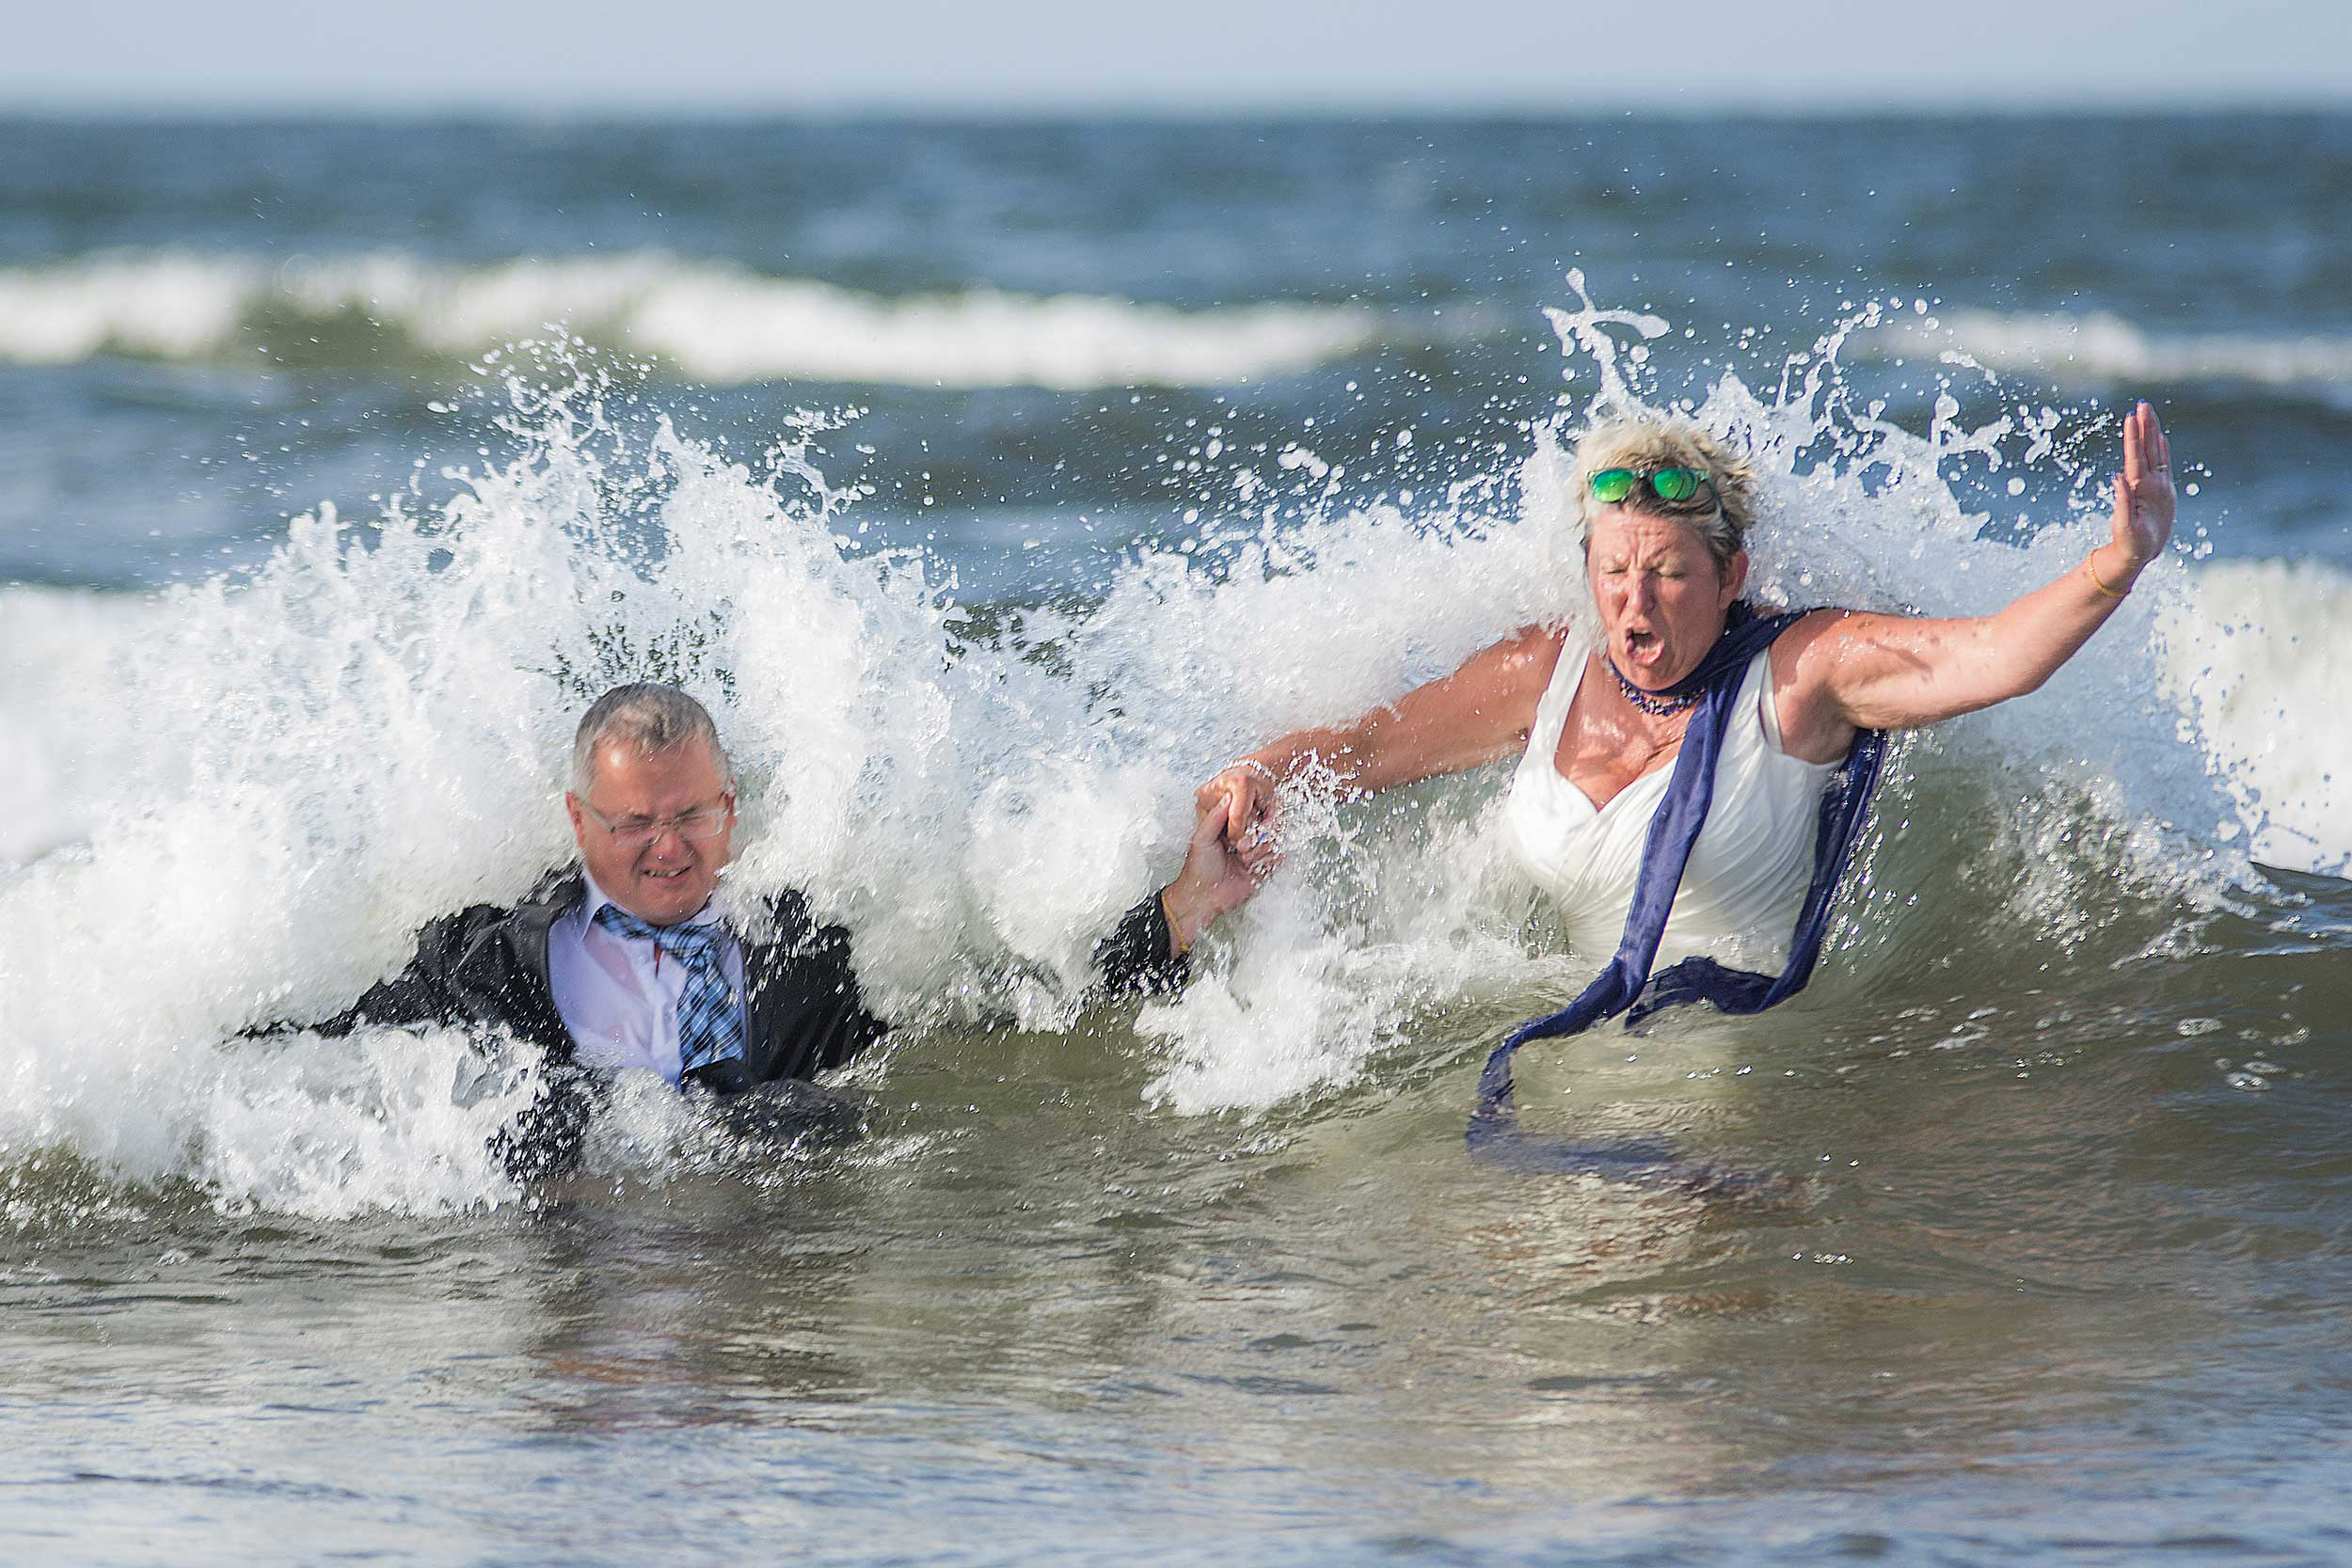 Hochzeitsfoto Crash the Dress Wasser Usedom